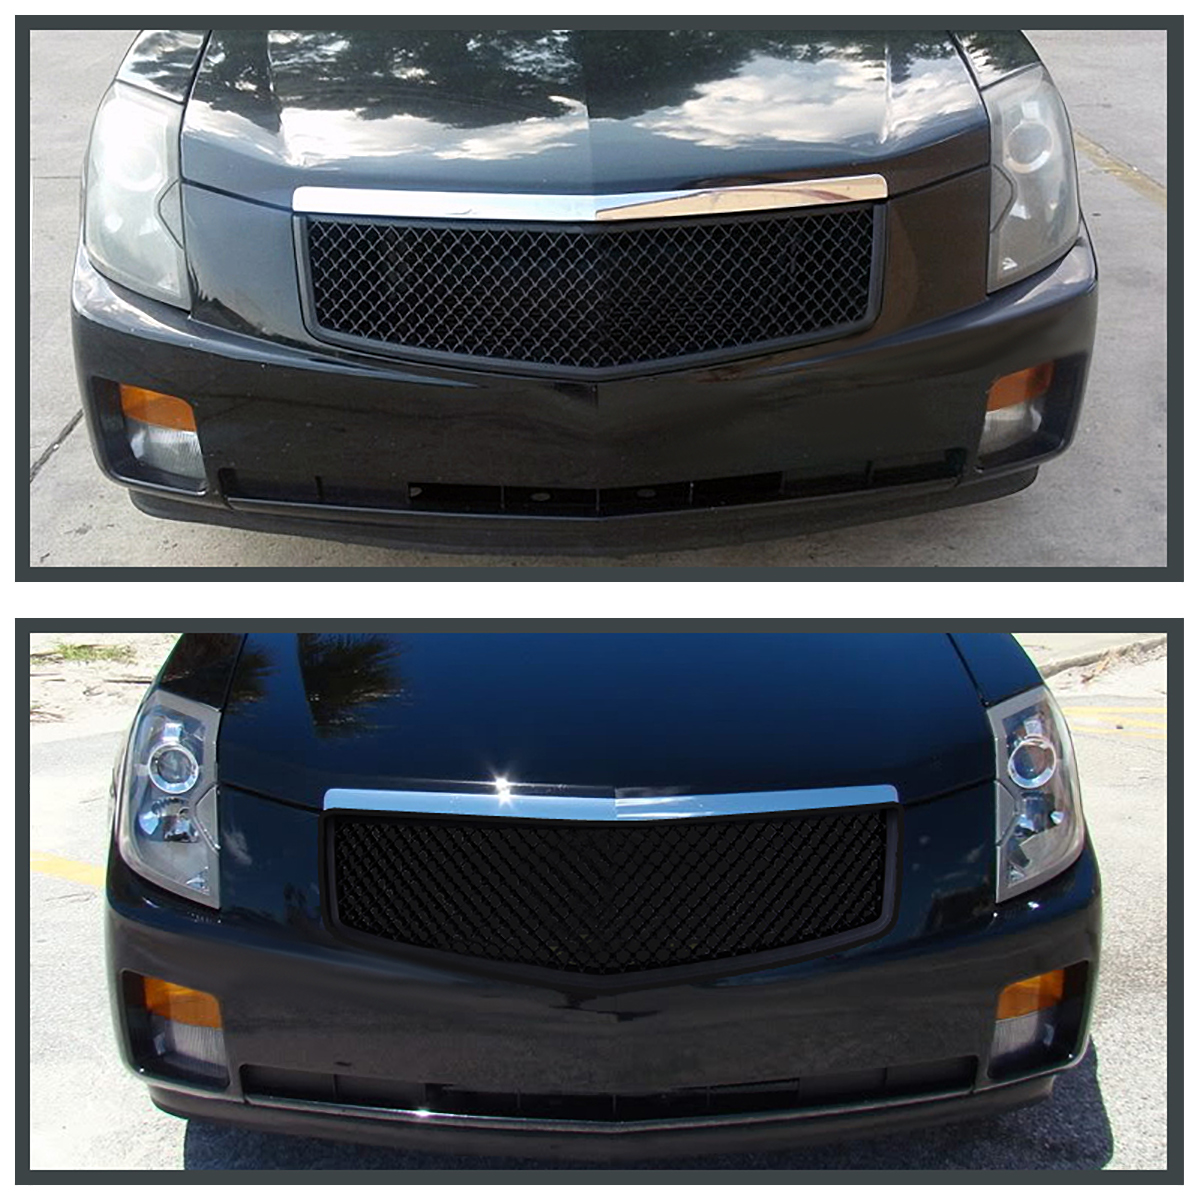 2003-2007 Cadillac CTS V ABS Mesh Front Hood Grill Matte